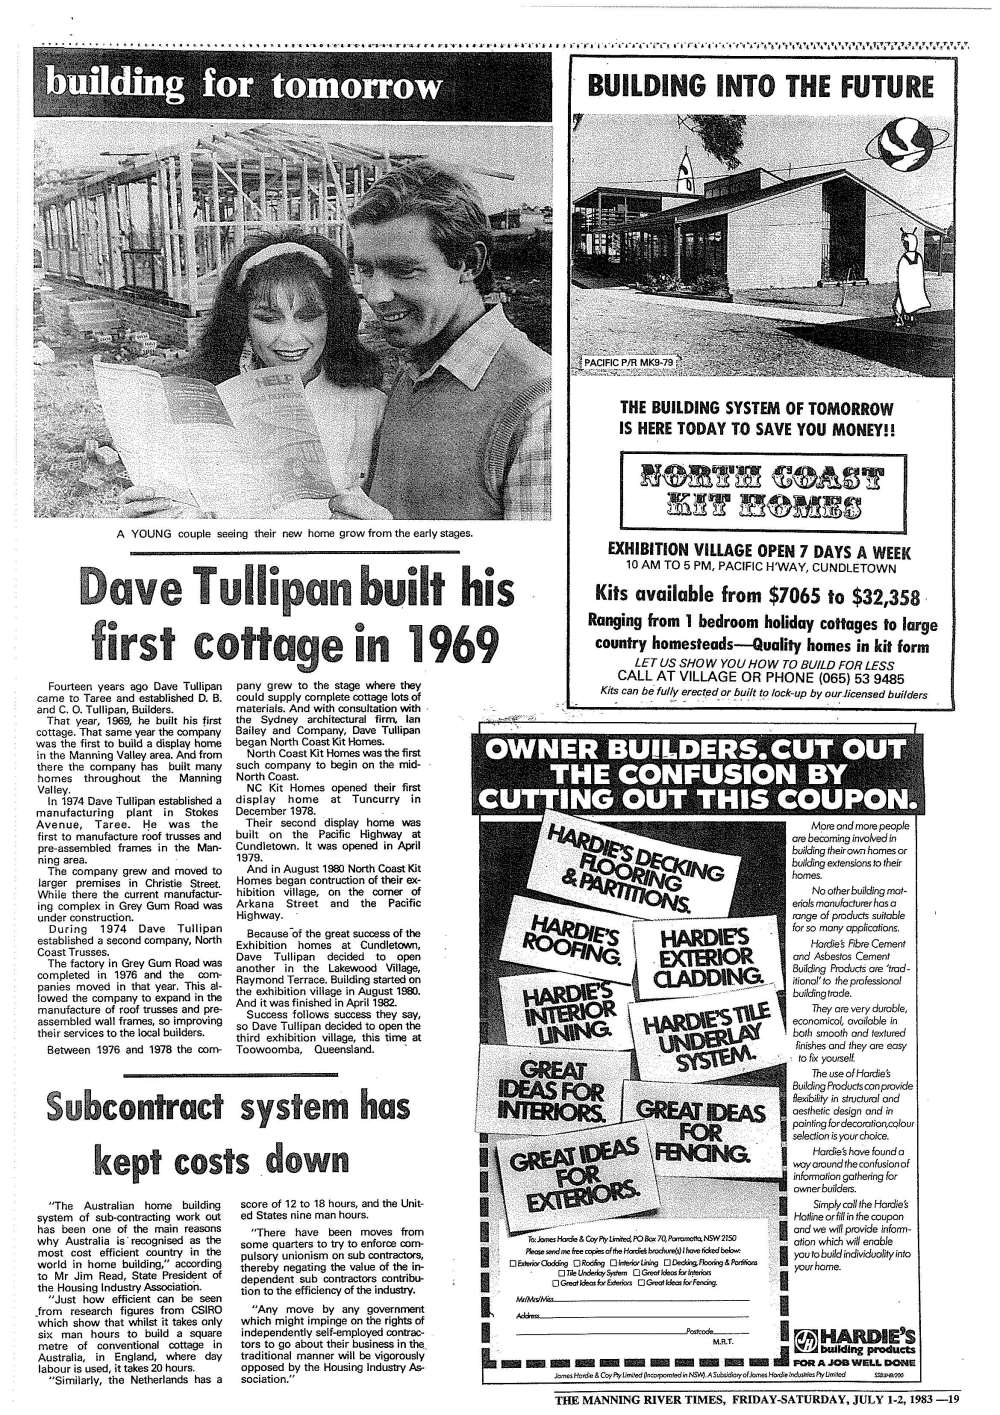 Dave Tullipan built his first cottage in 1969